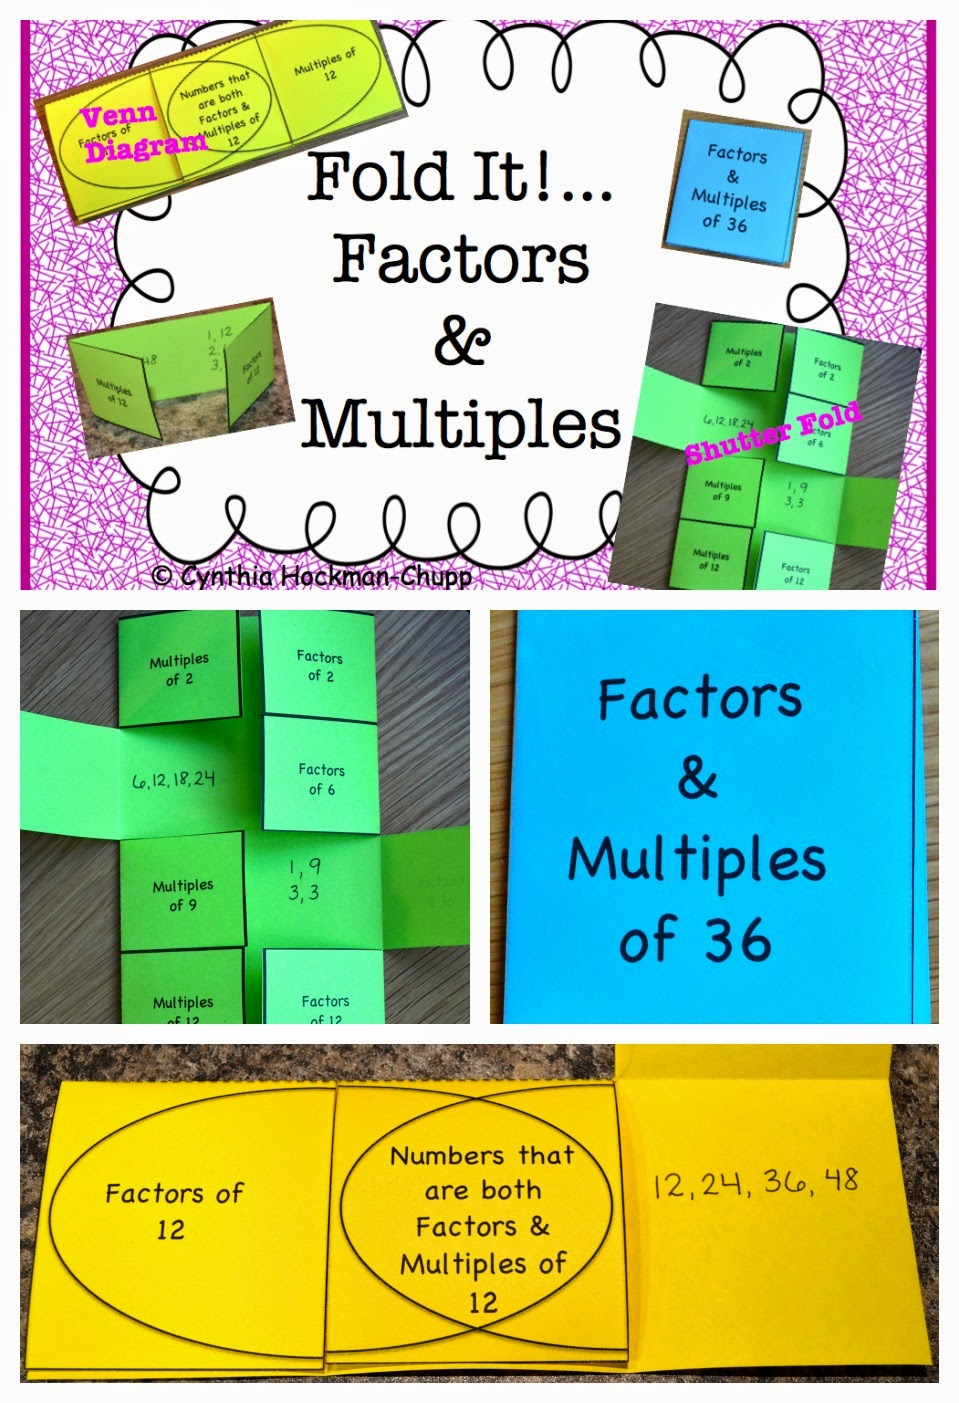 worksheet Multiples And Factors love2learn2day have multiple factor confusion confusion